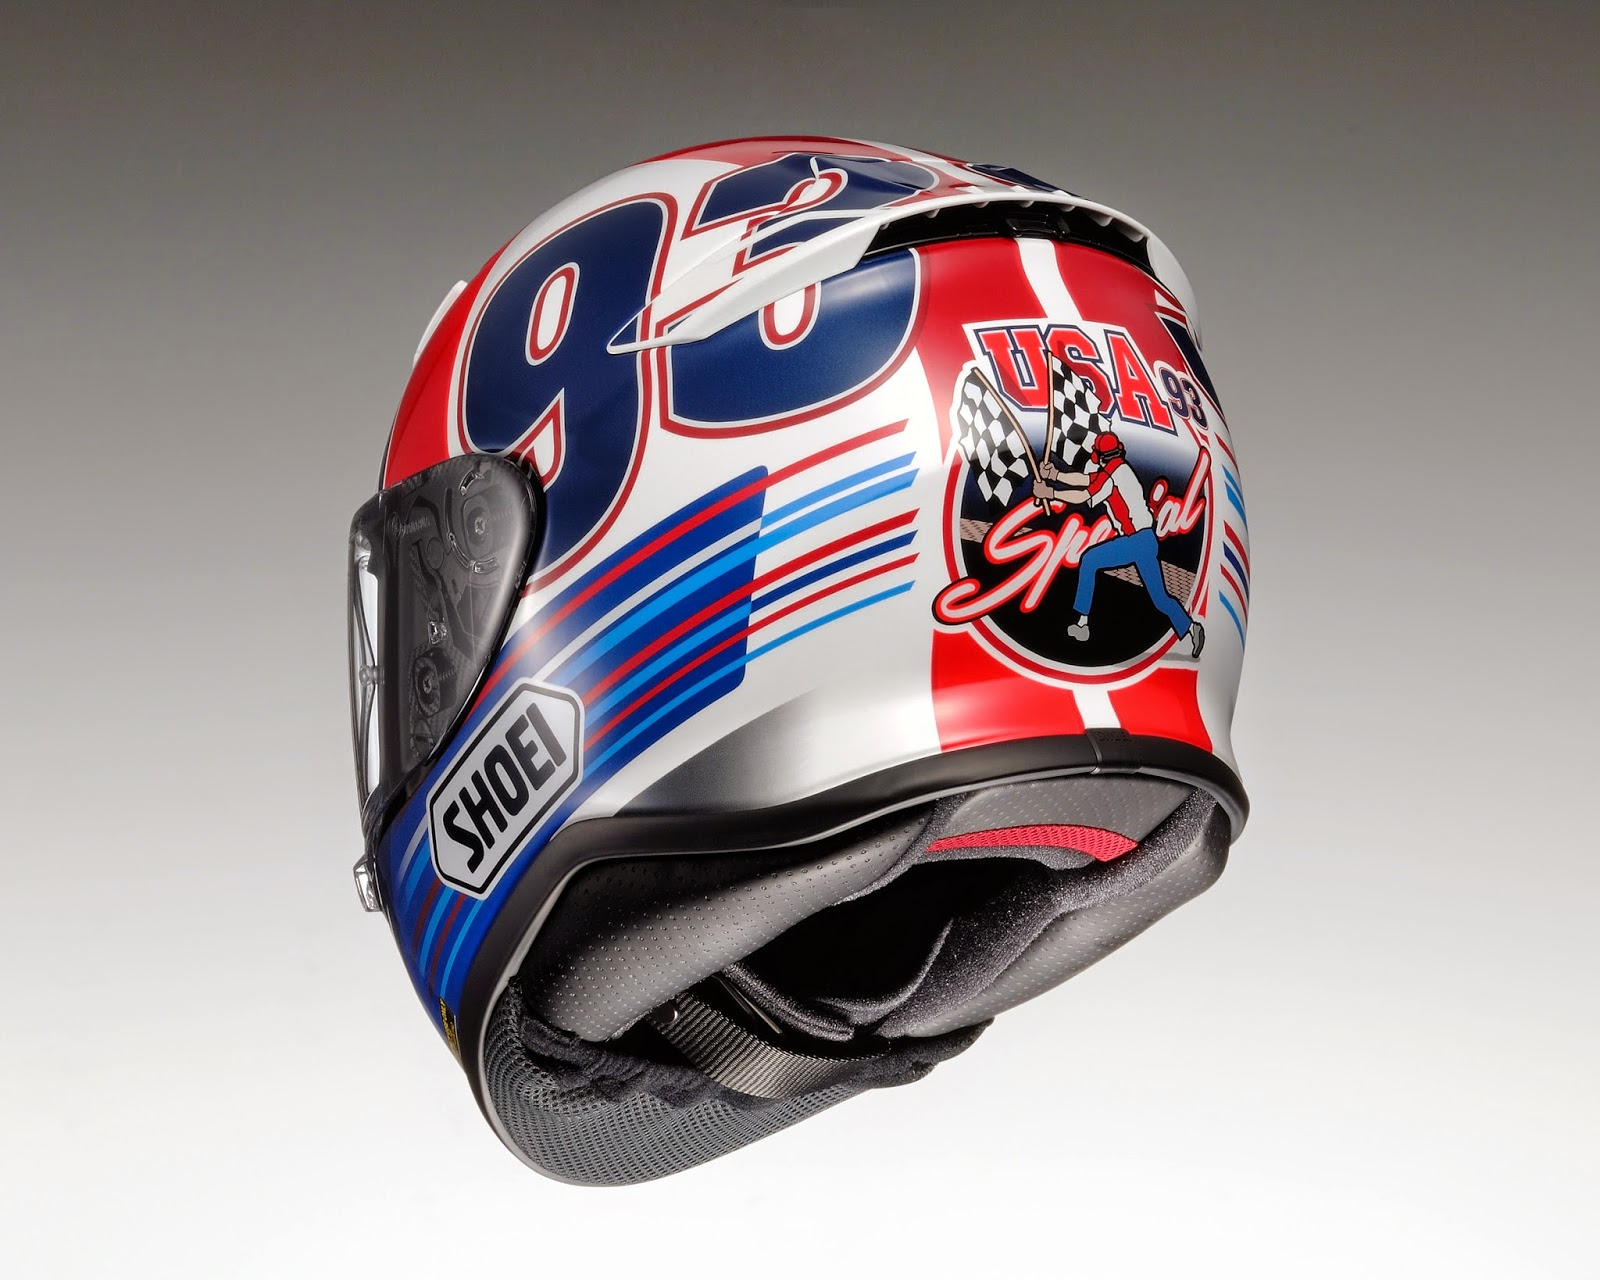 champion helmets new 2015 shoei marc marquez helmets. Black Bedroom Furniture Sets. Home Design Ideas